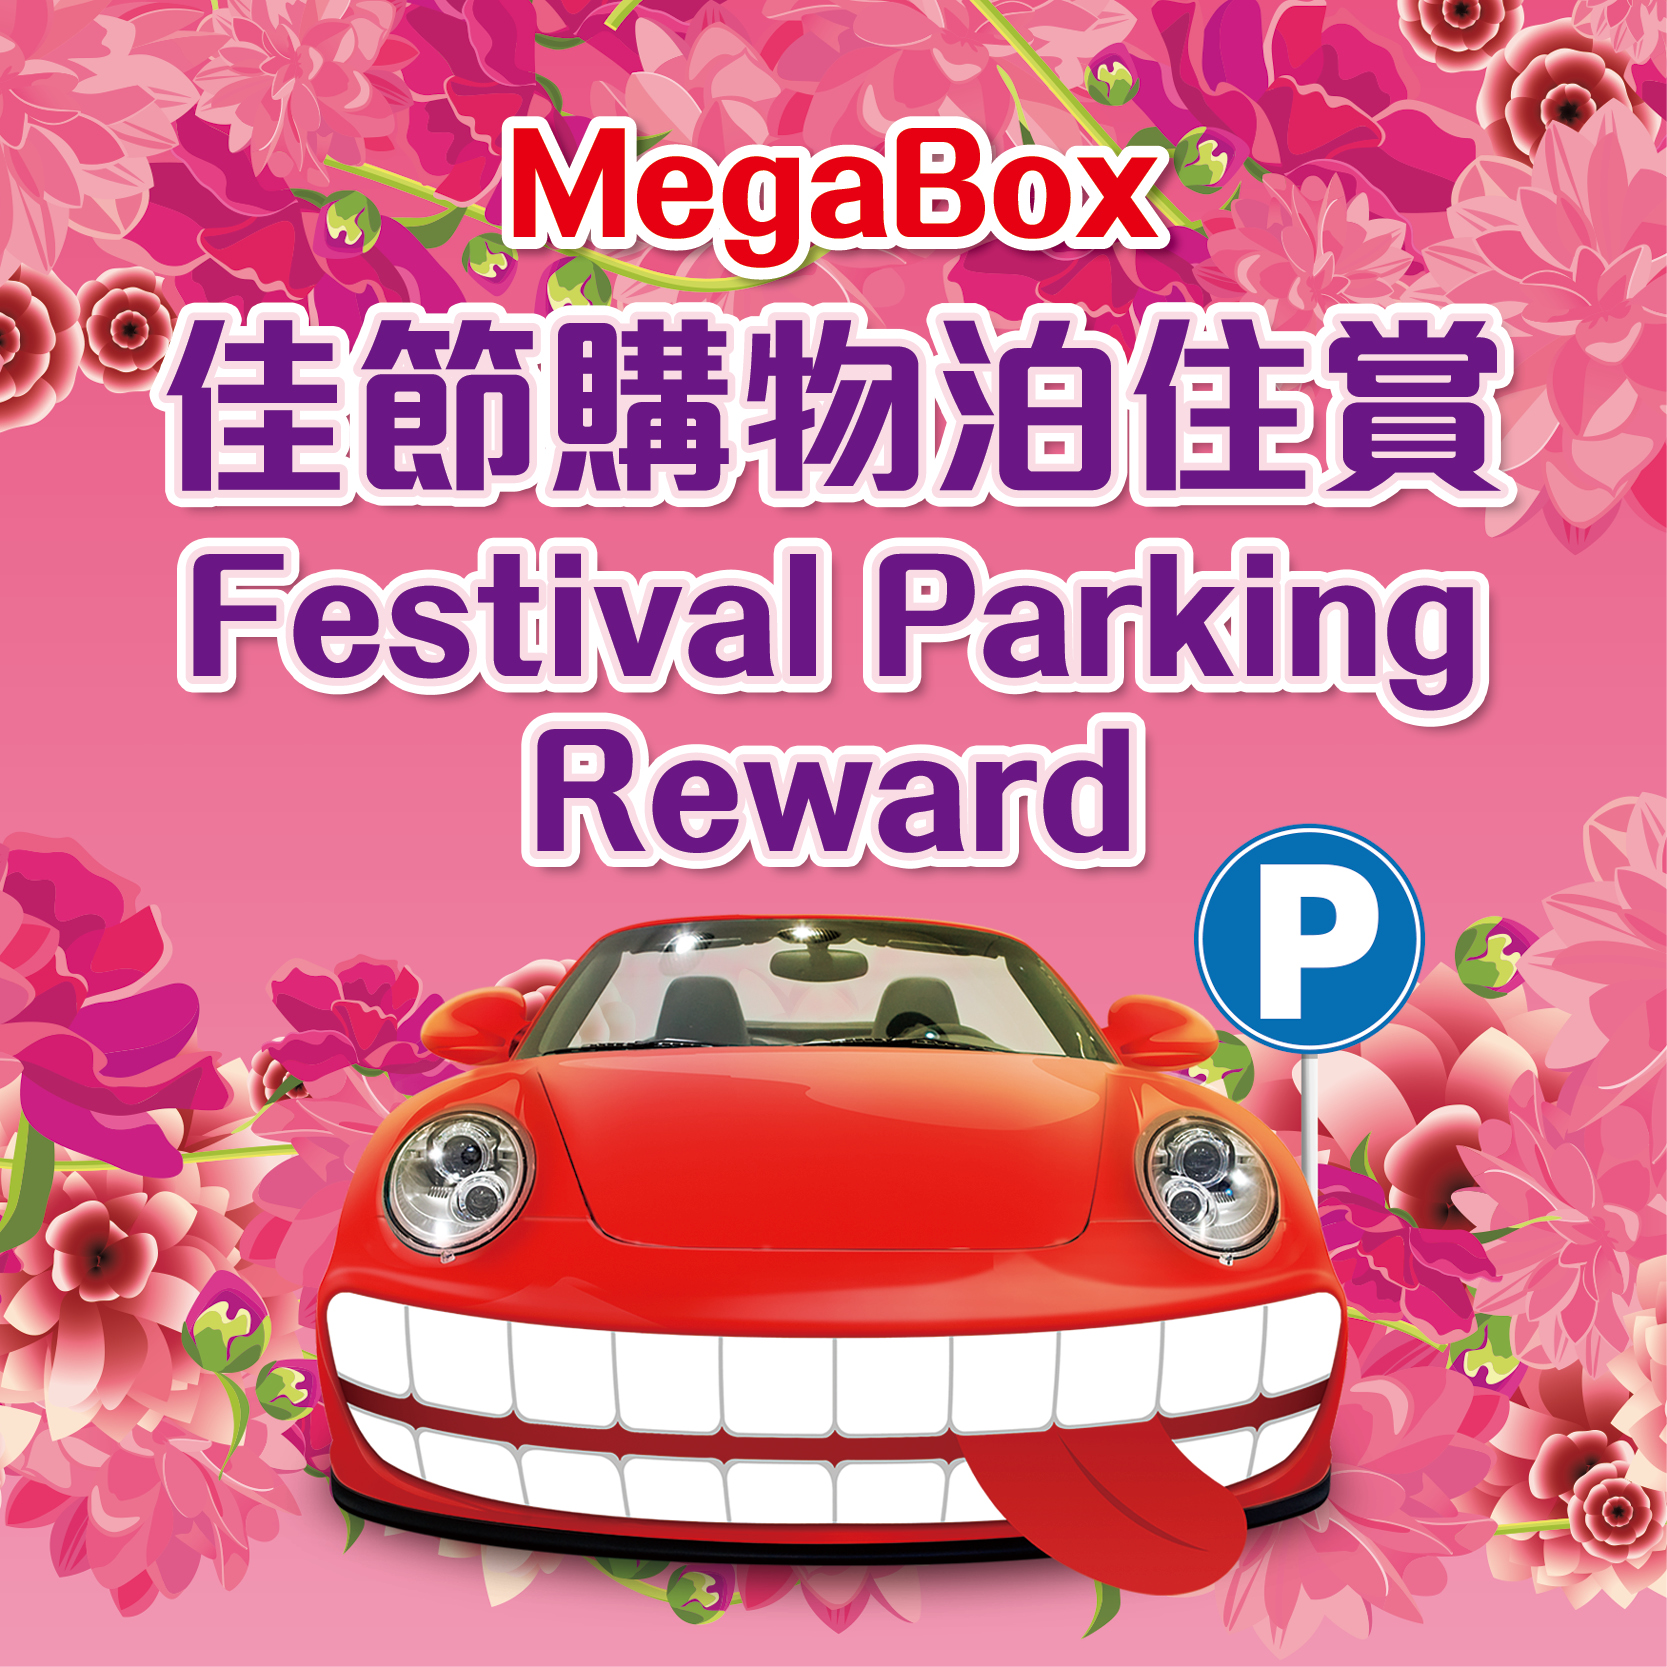 FESTIVAL PARKING REWARDS